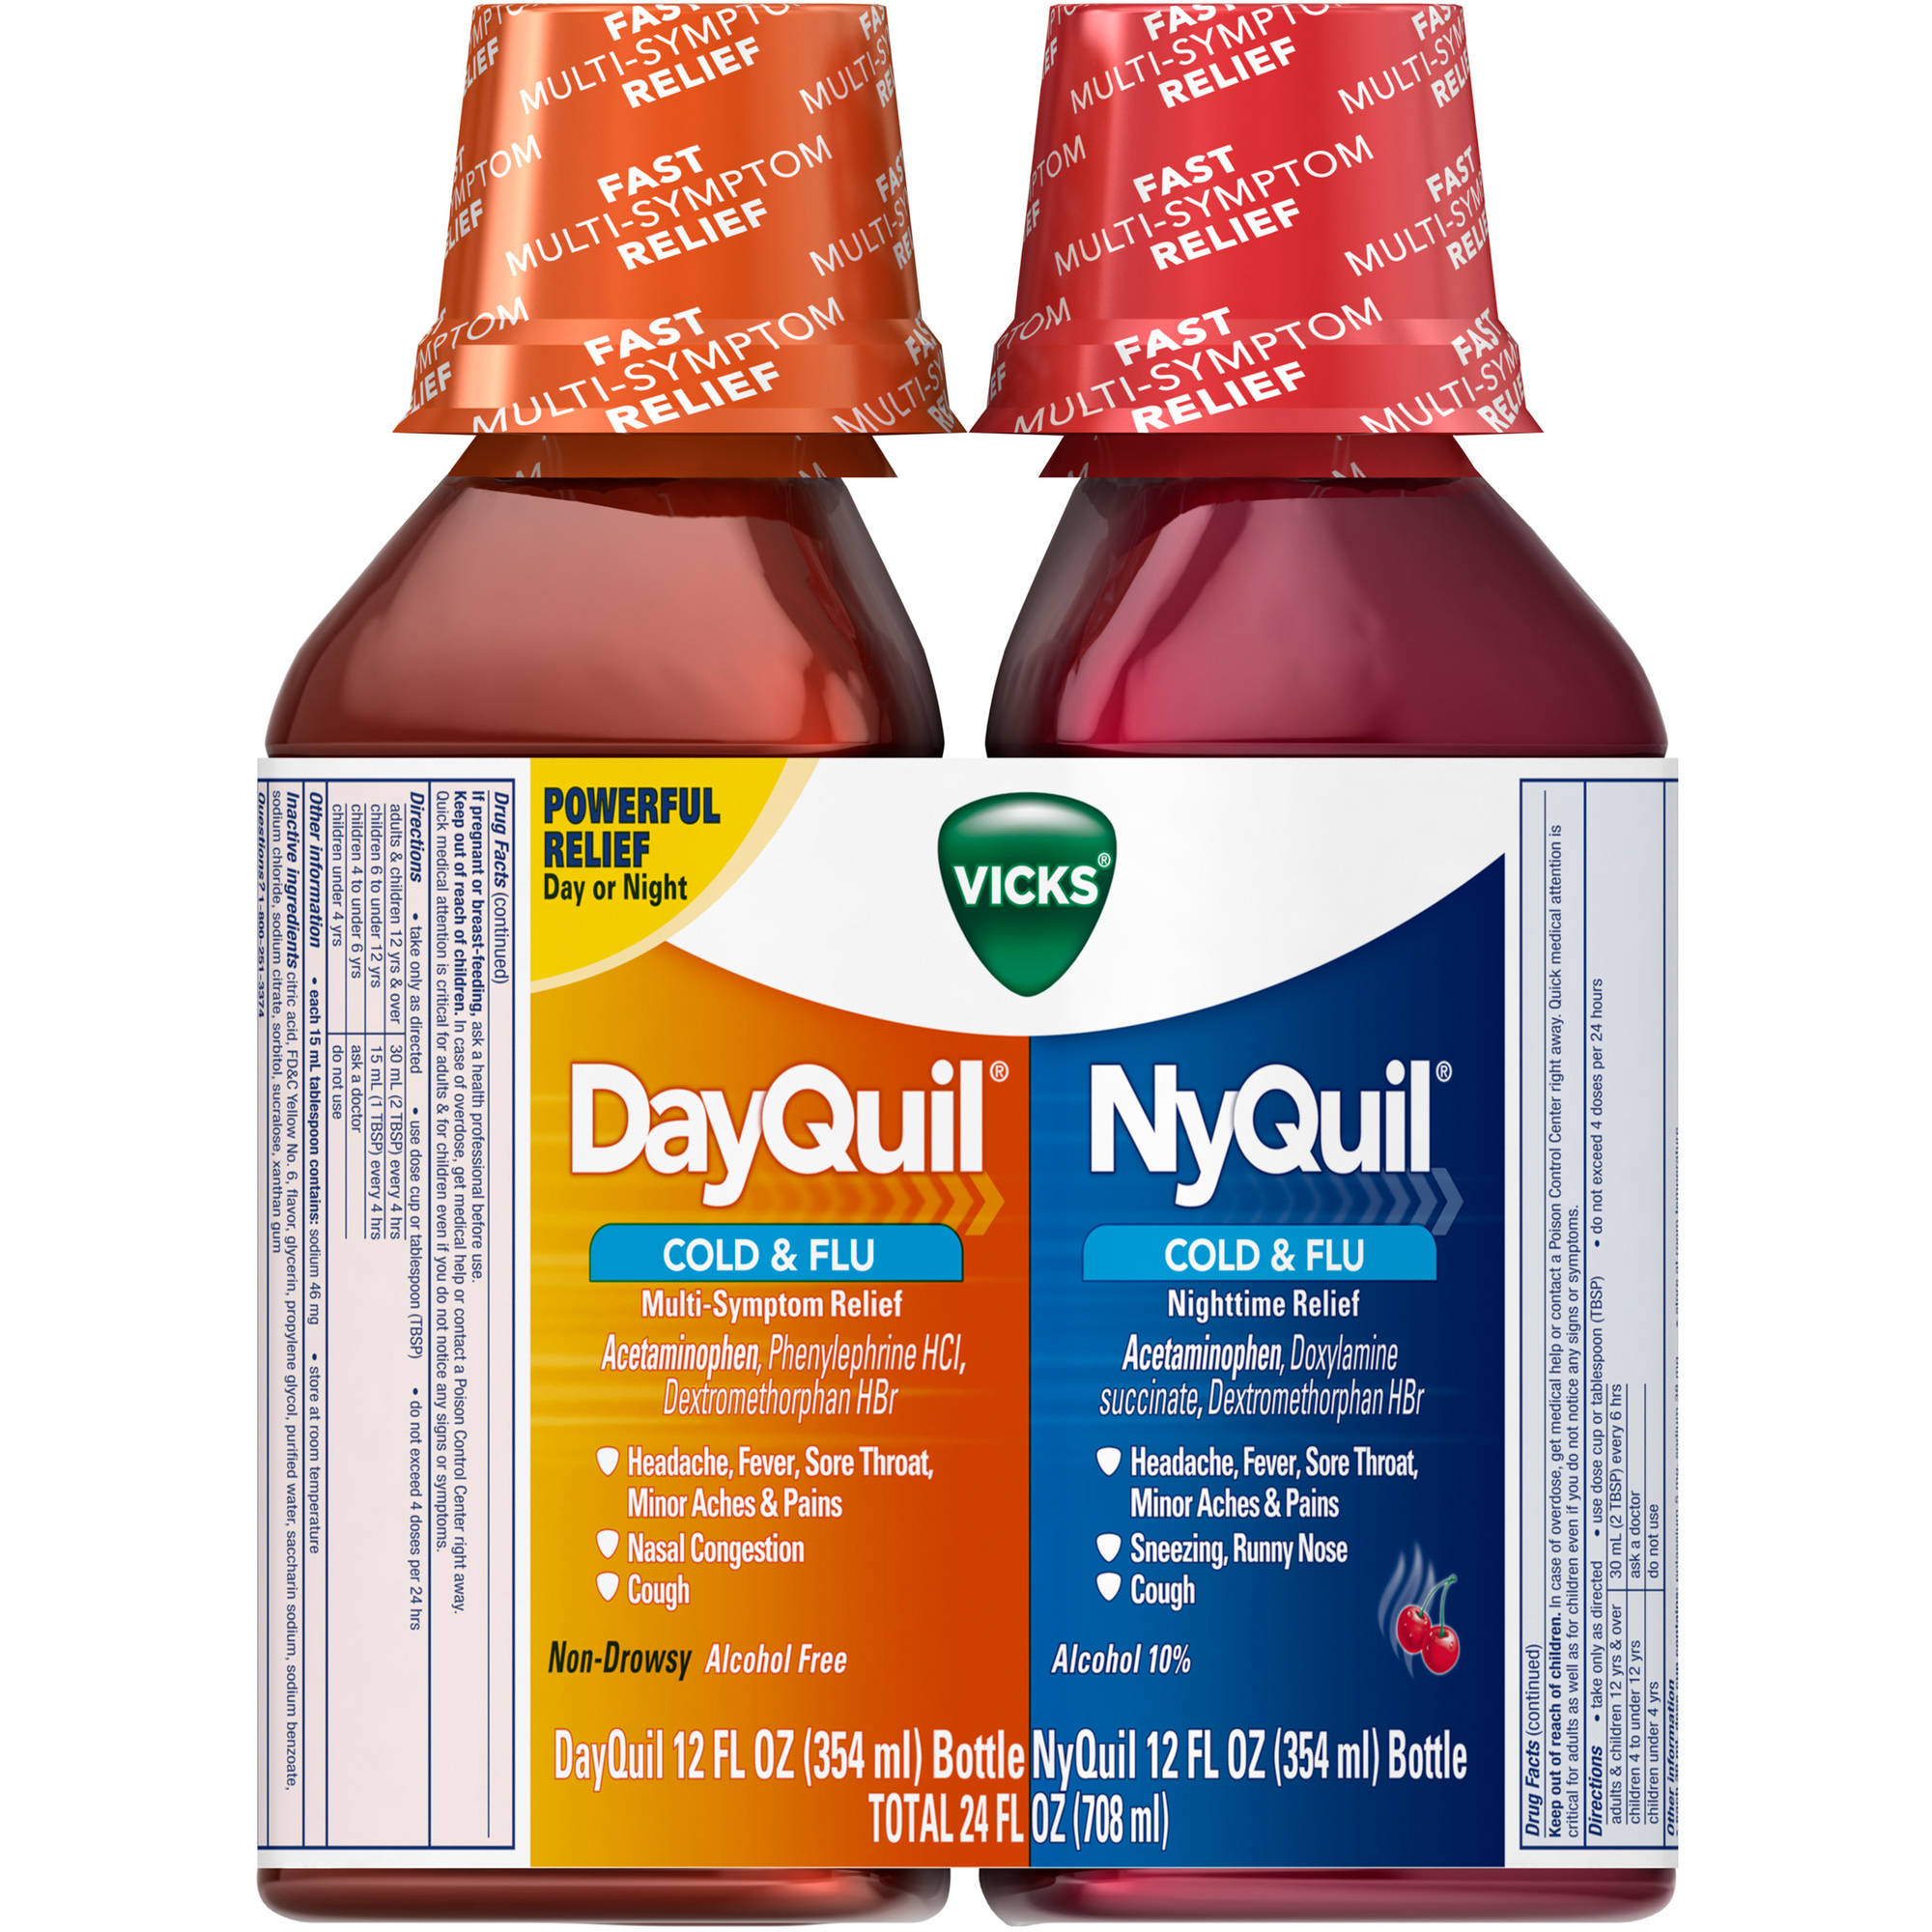 Vicks DayQuil & NyQuil Cold & Flu Liquid Cold Medicine Combo Pack, 12 fl oz, 2 count